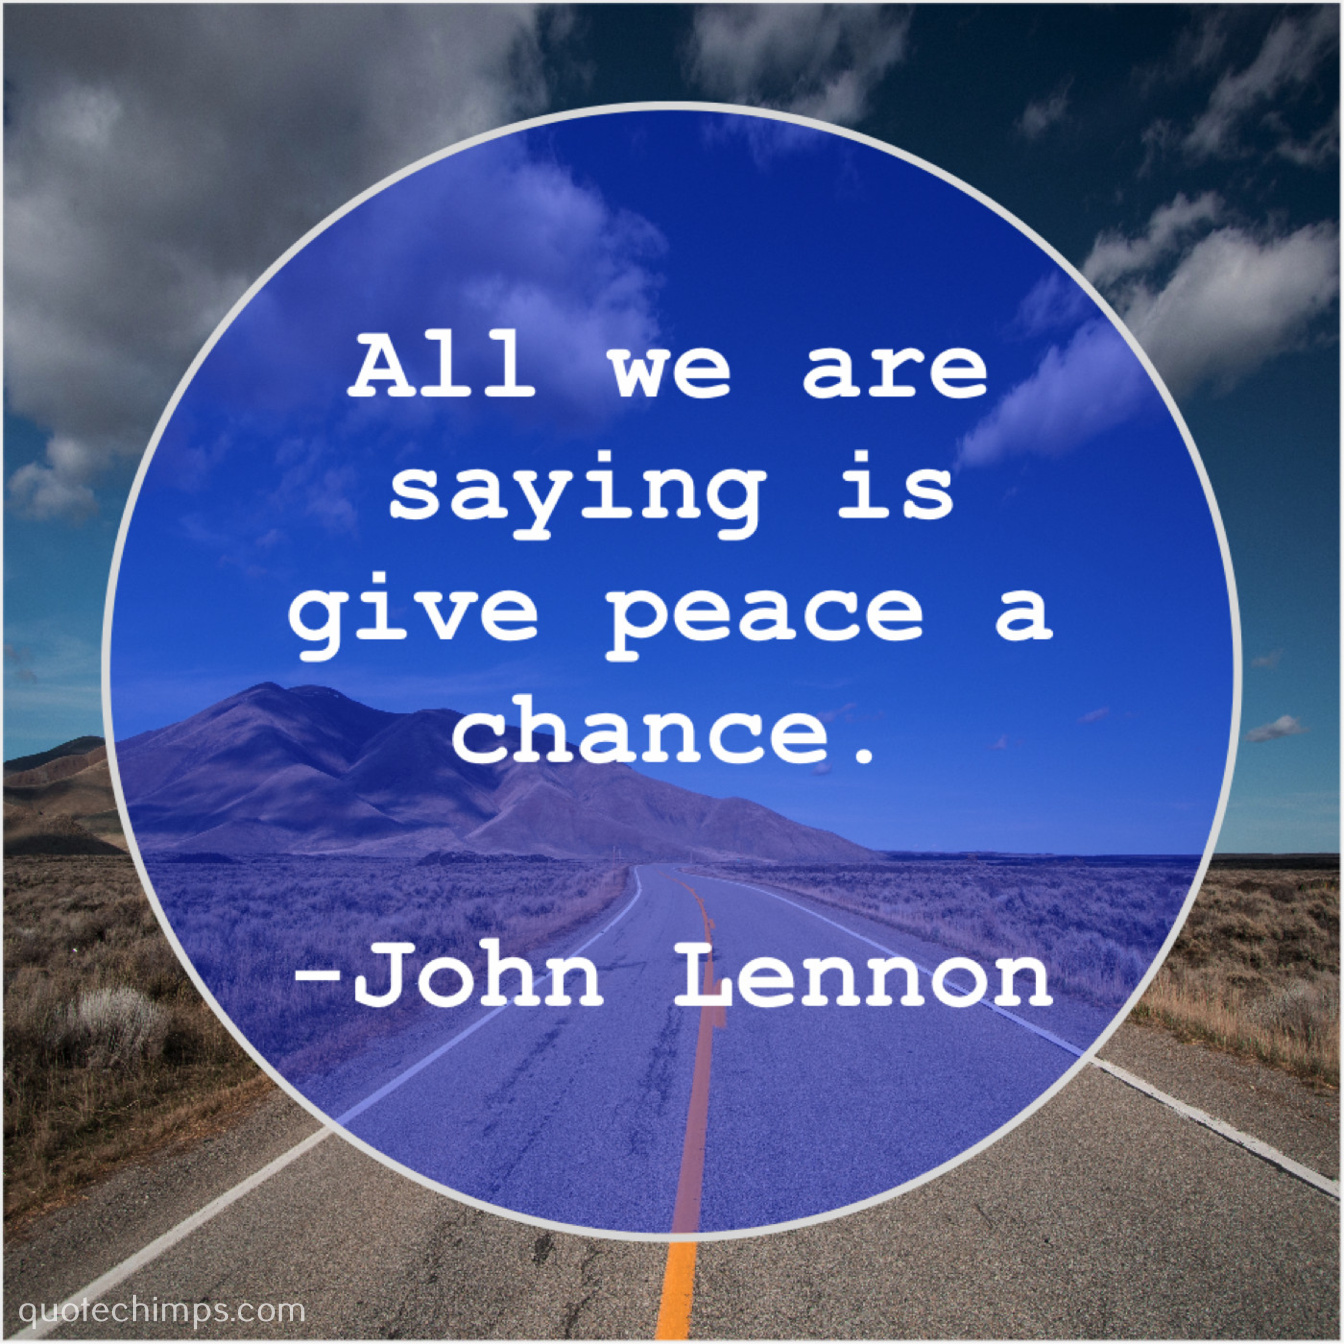 John Lennon All We Are Saying Is Quote Chimps